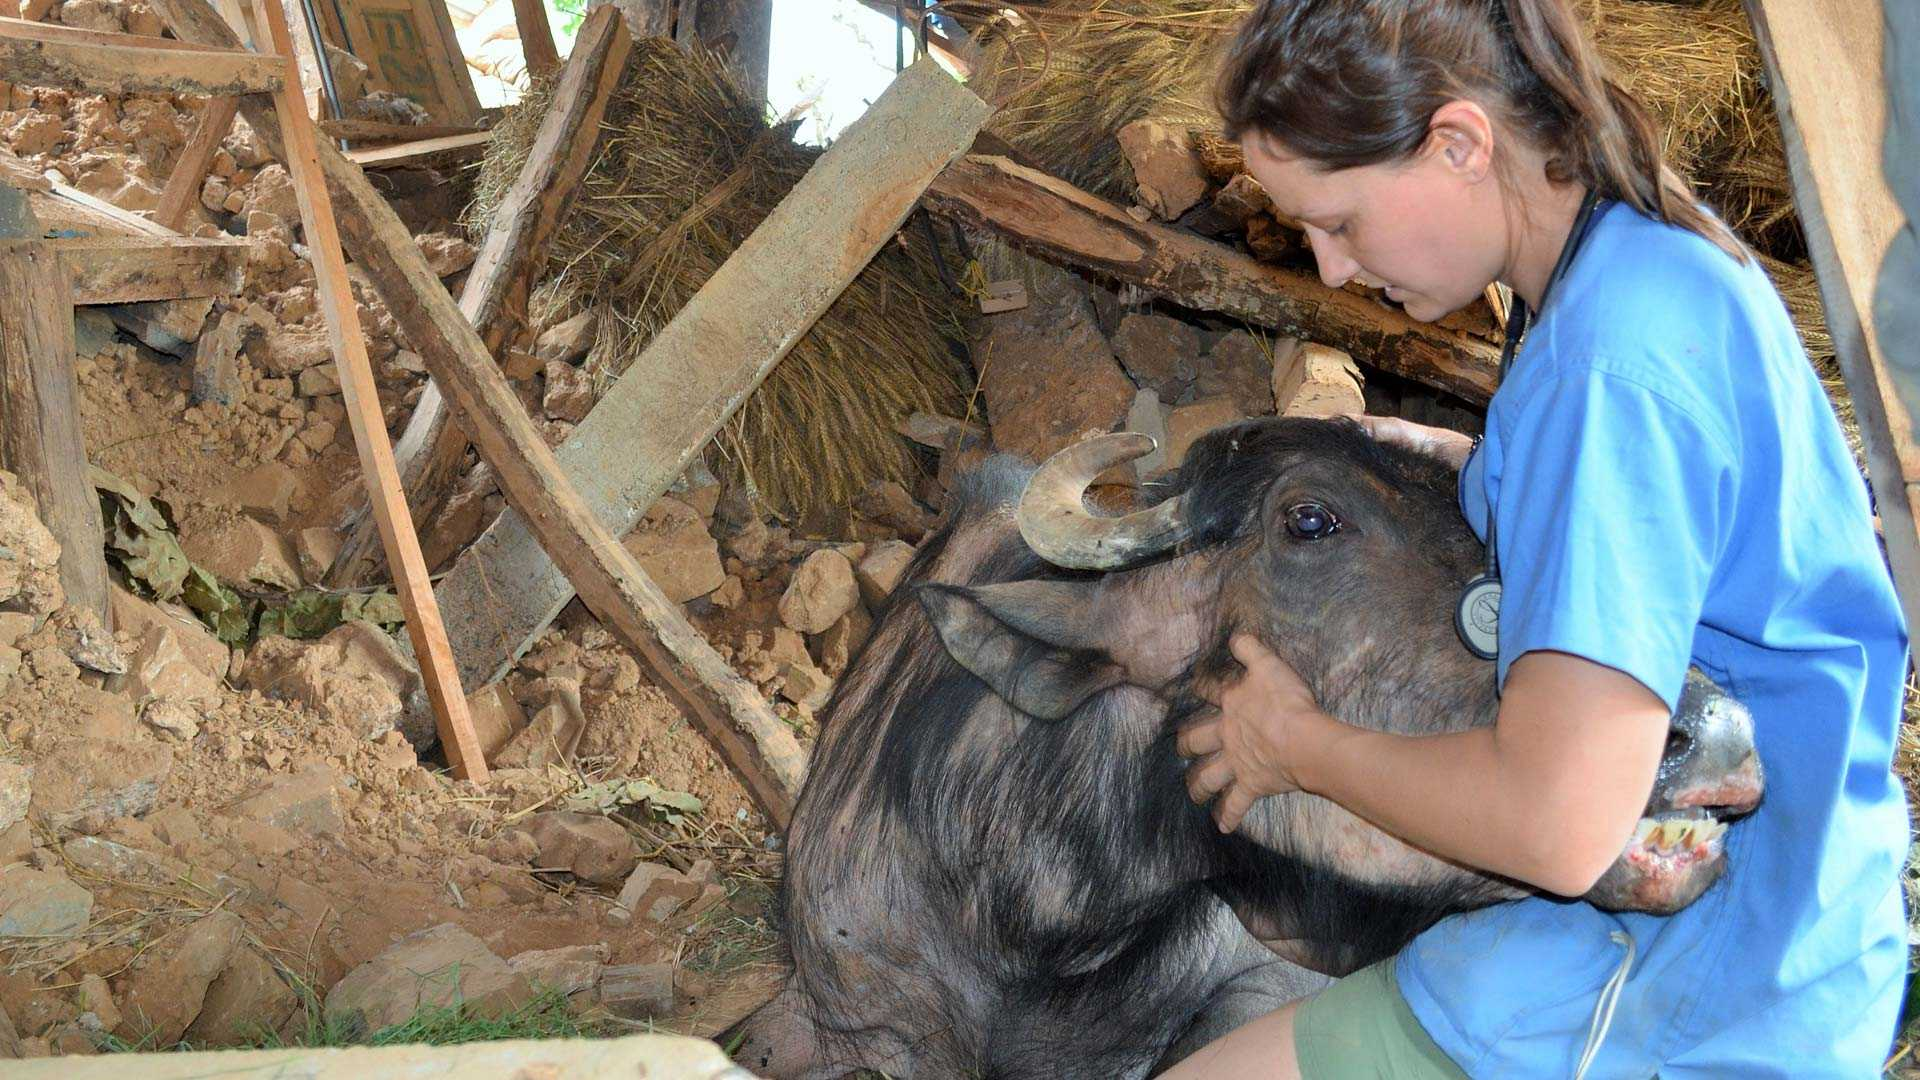 Get assistance from the Worldwide Veterinary Service